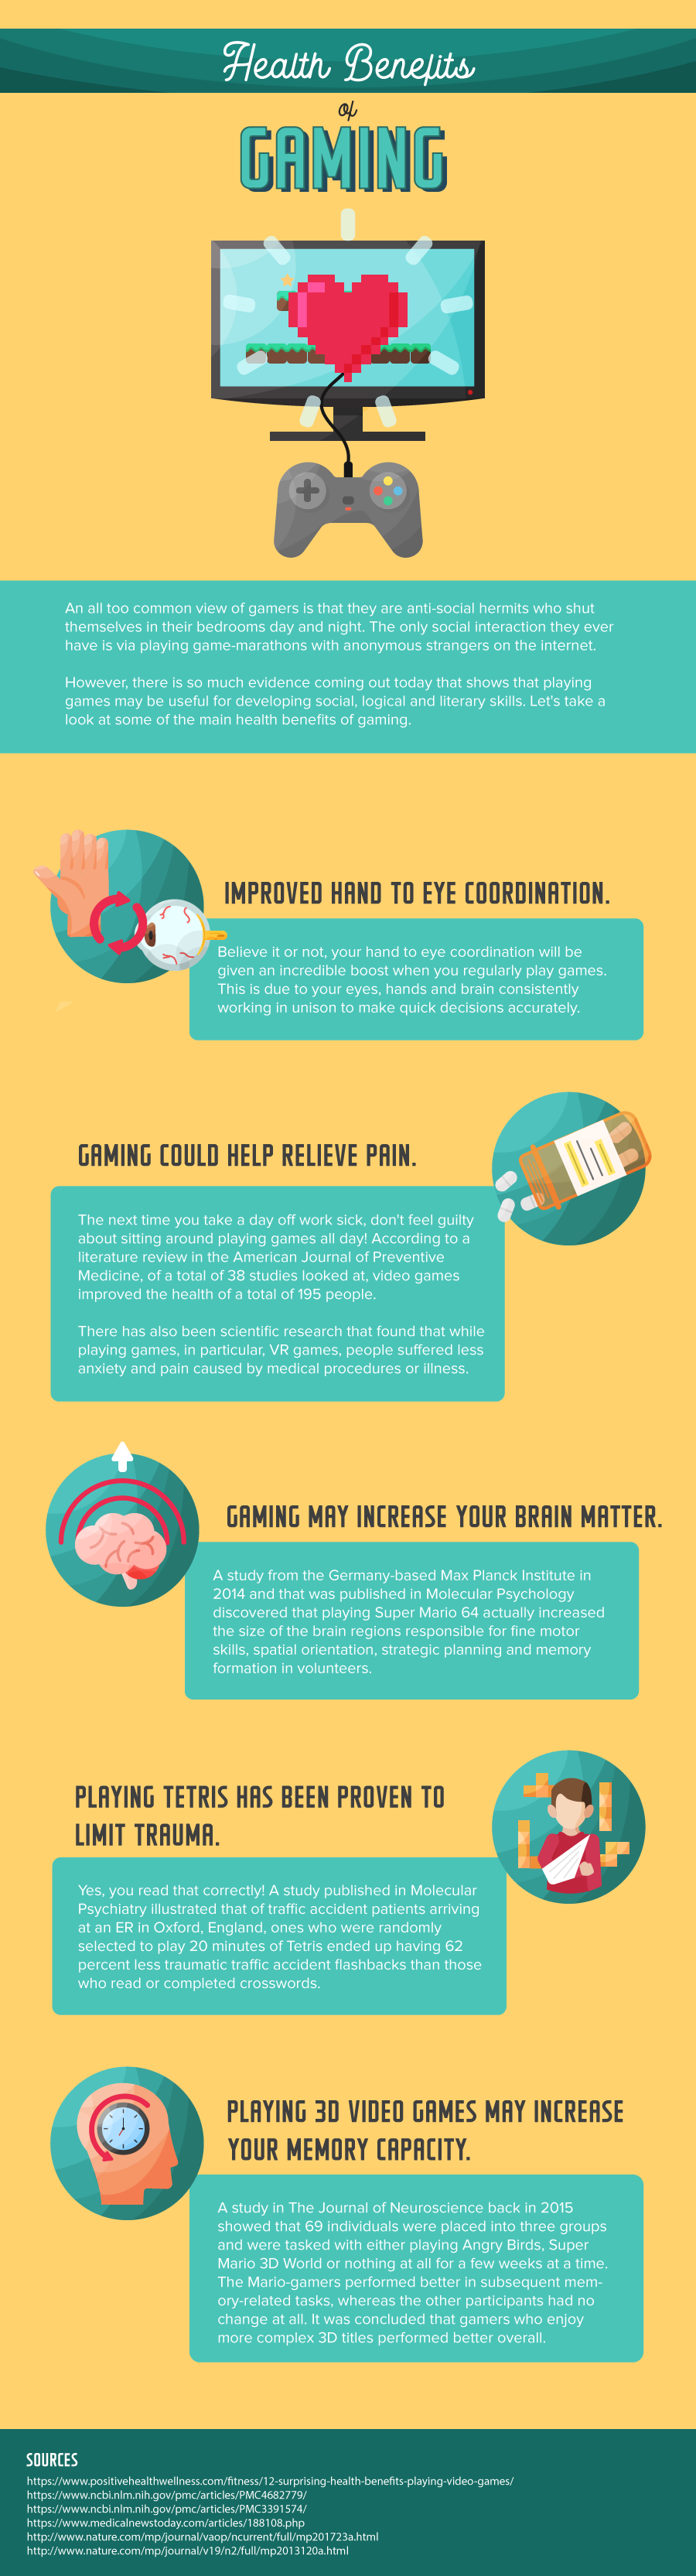 HEALTH BENEFITS OF GAMING - AN INFOGRAPHIC